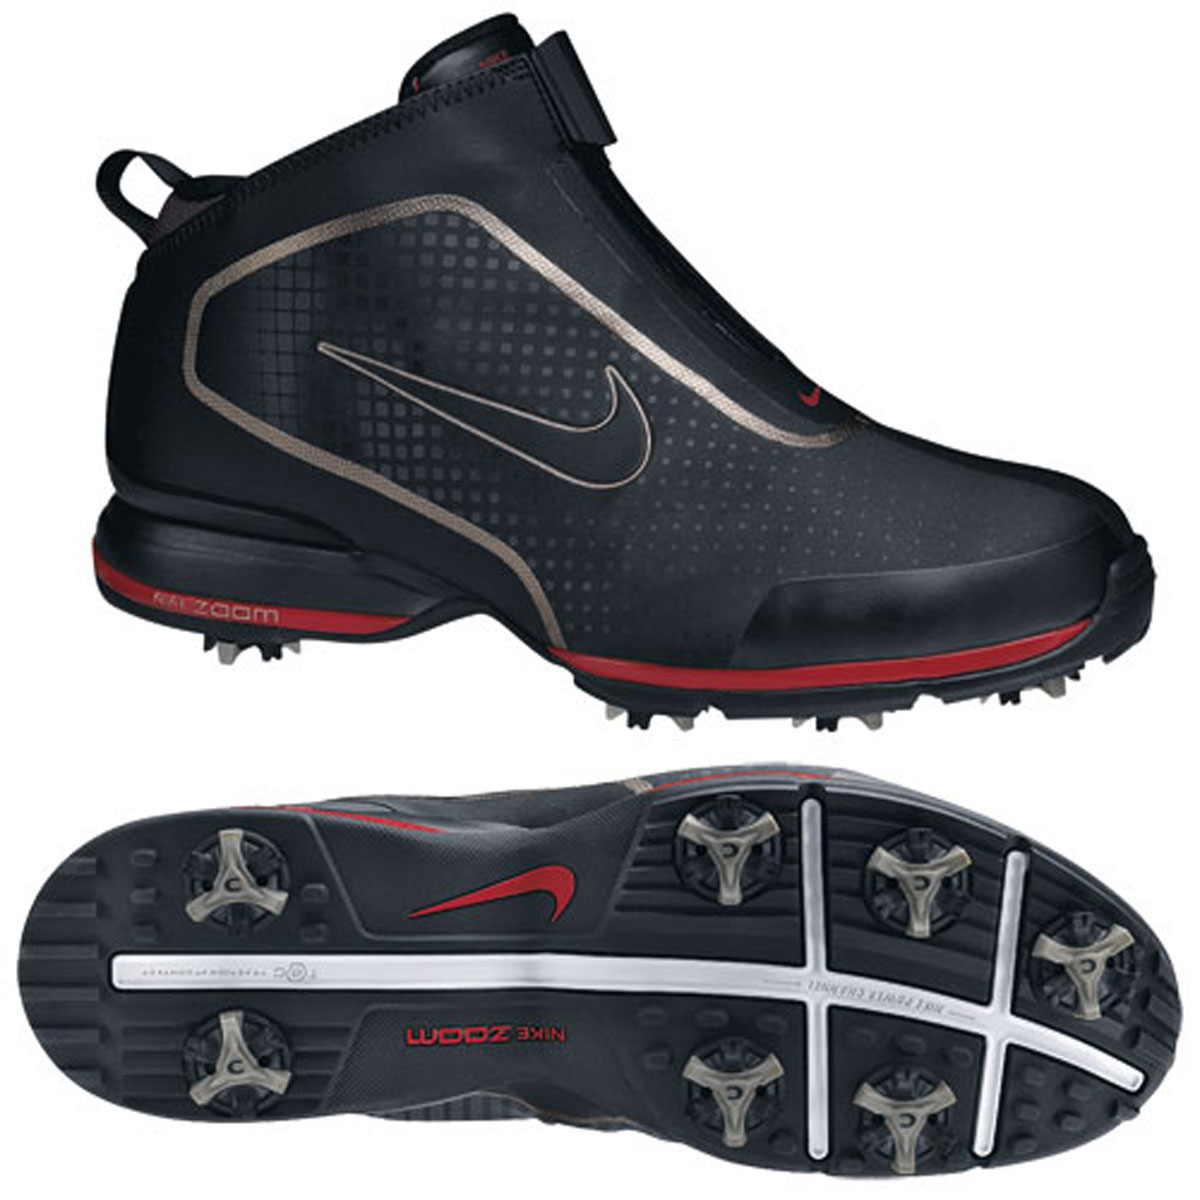 Nike Air Zoom Bandon Golf Boot Shoes - Black | eBay